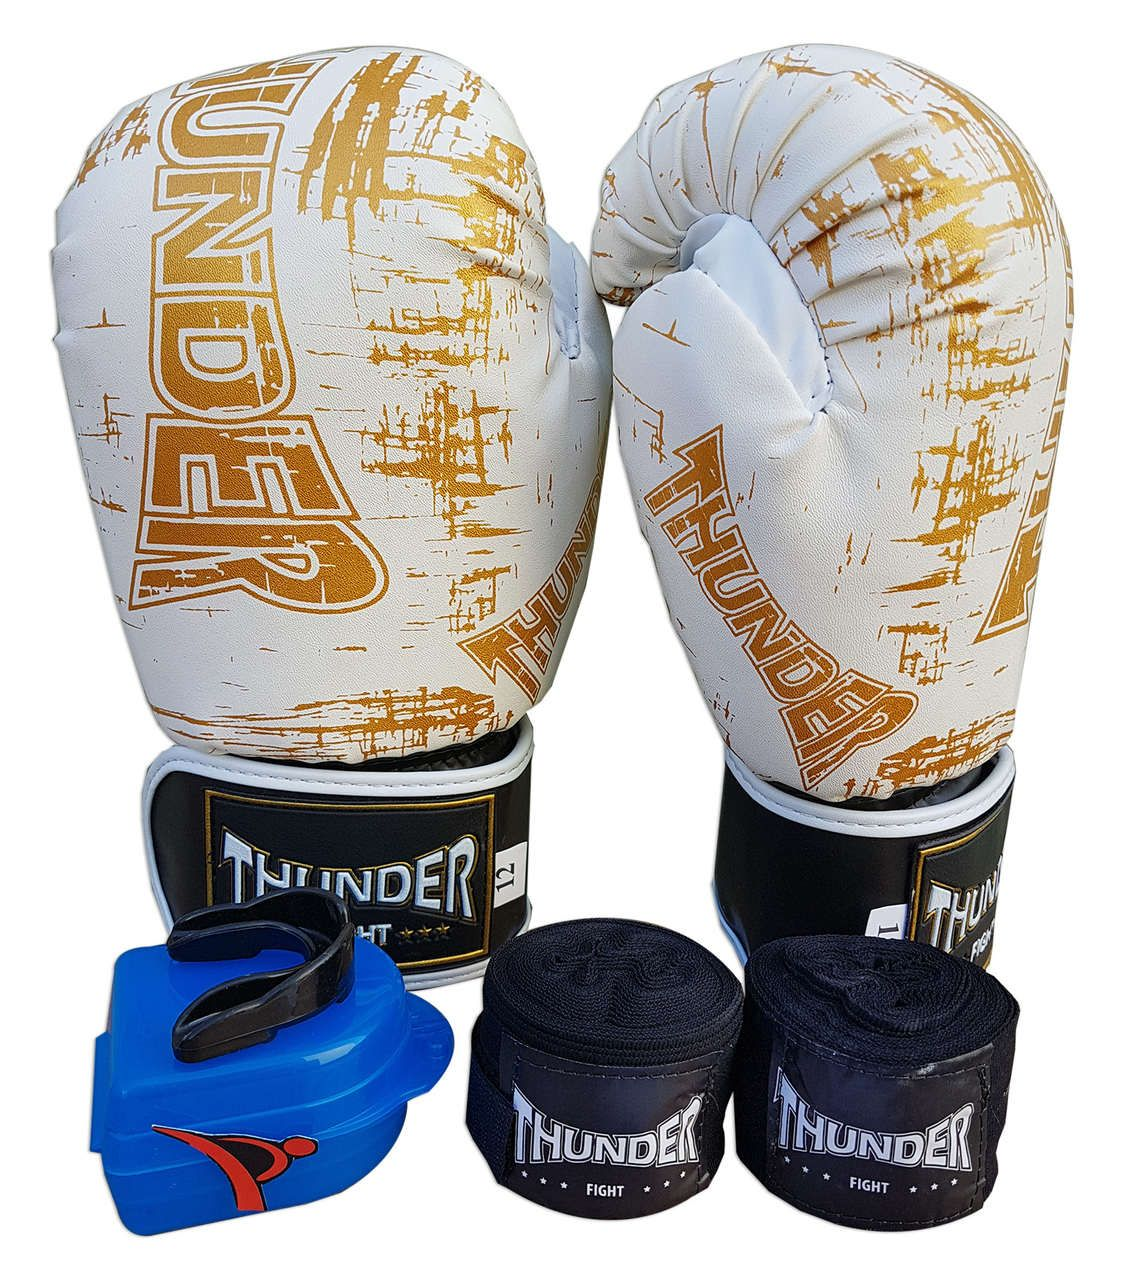 Kit de Boxe / Muay Thai 12oz - Branco Riscado - Thunder Fight   - PRALUTA SHOP